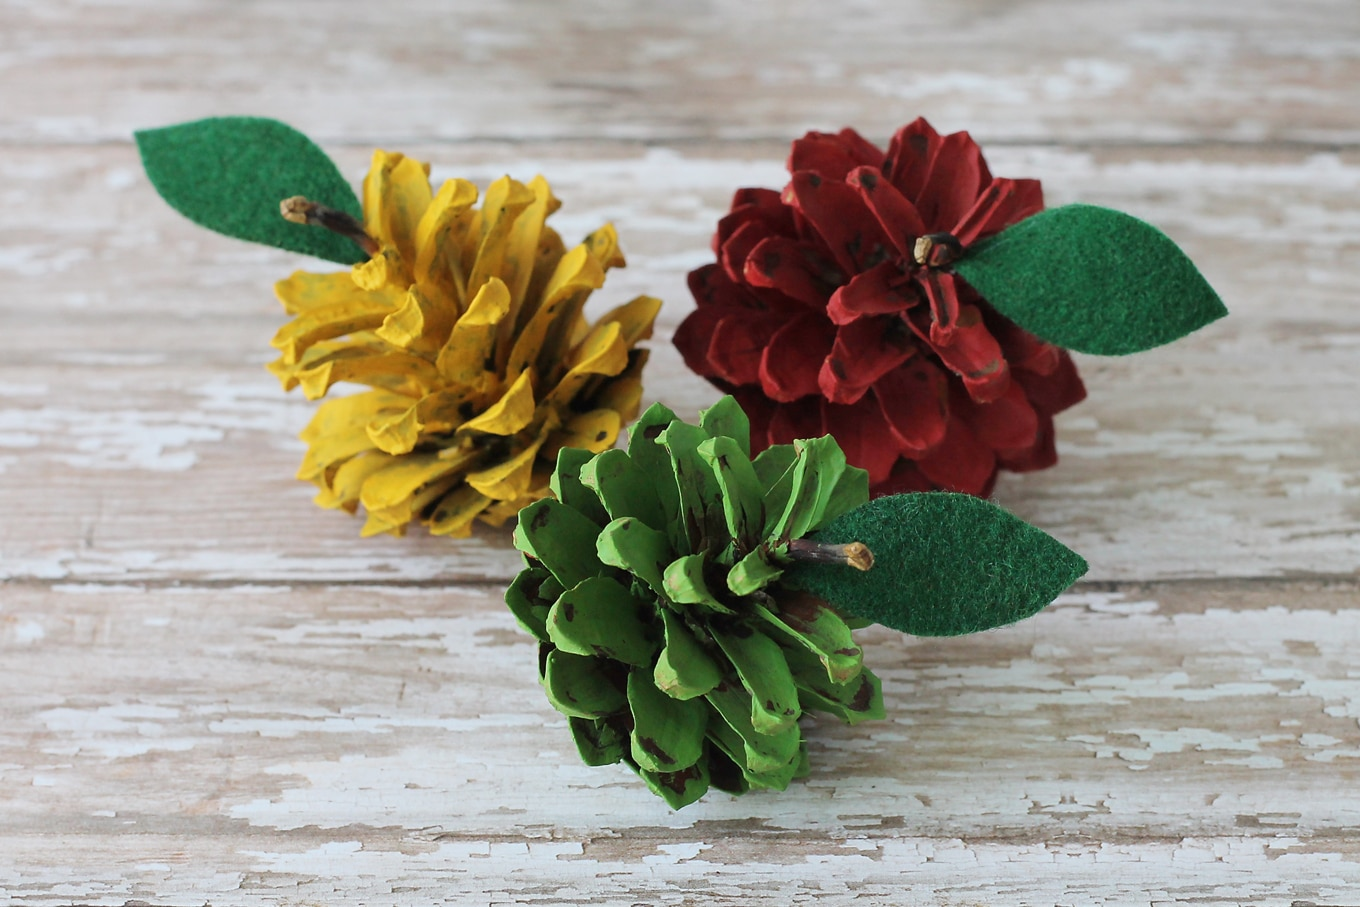 Kids of all ages will enjoy making pine cone apples. They are a creative, colorful fall nature craft for kids!